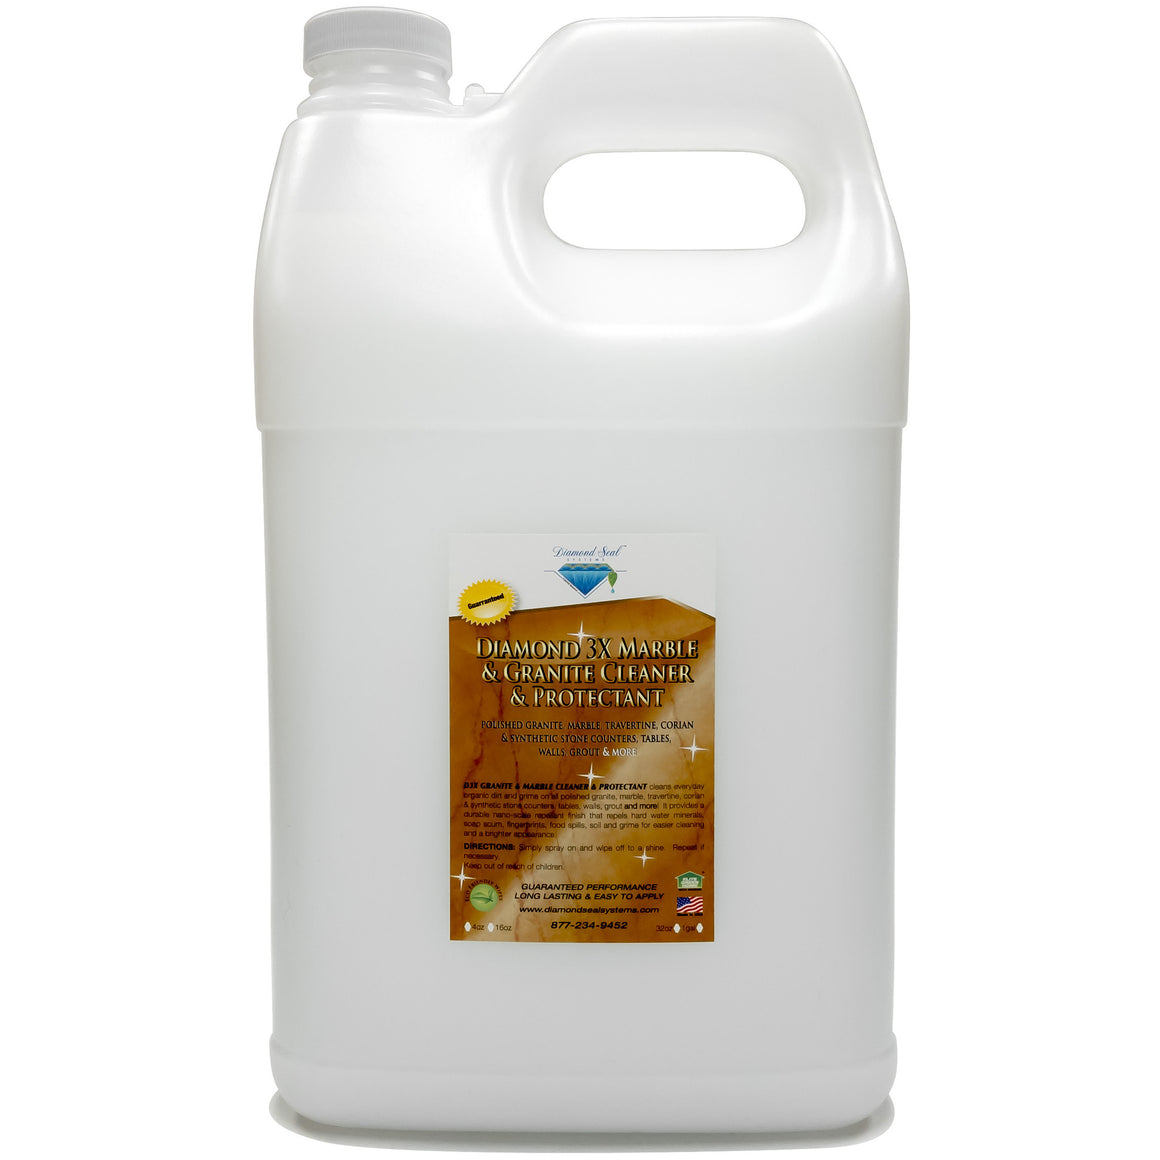 Diamond 3x Marble & Granite Cleaner